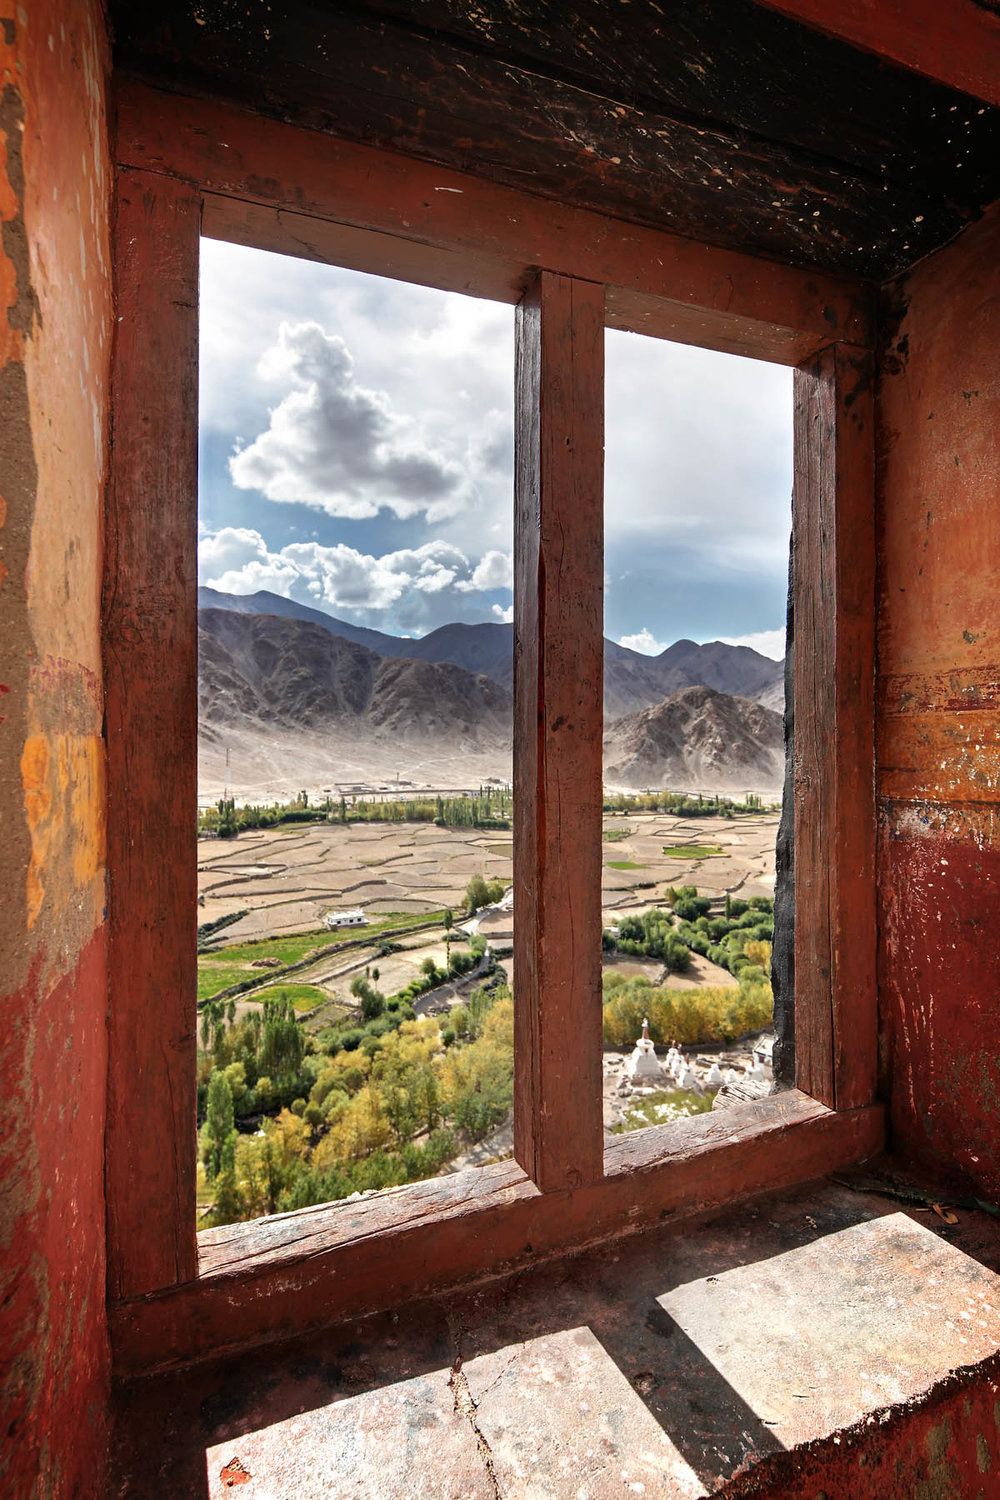 View over the barley fields, Chemdrey Monastery, Ladakh, India